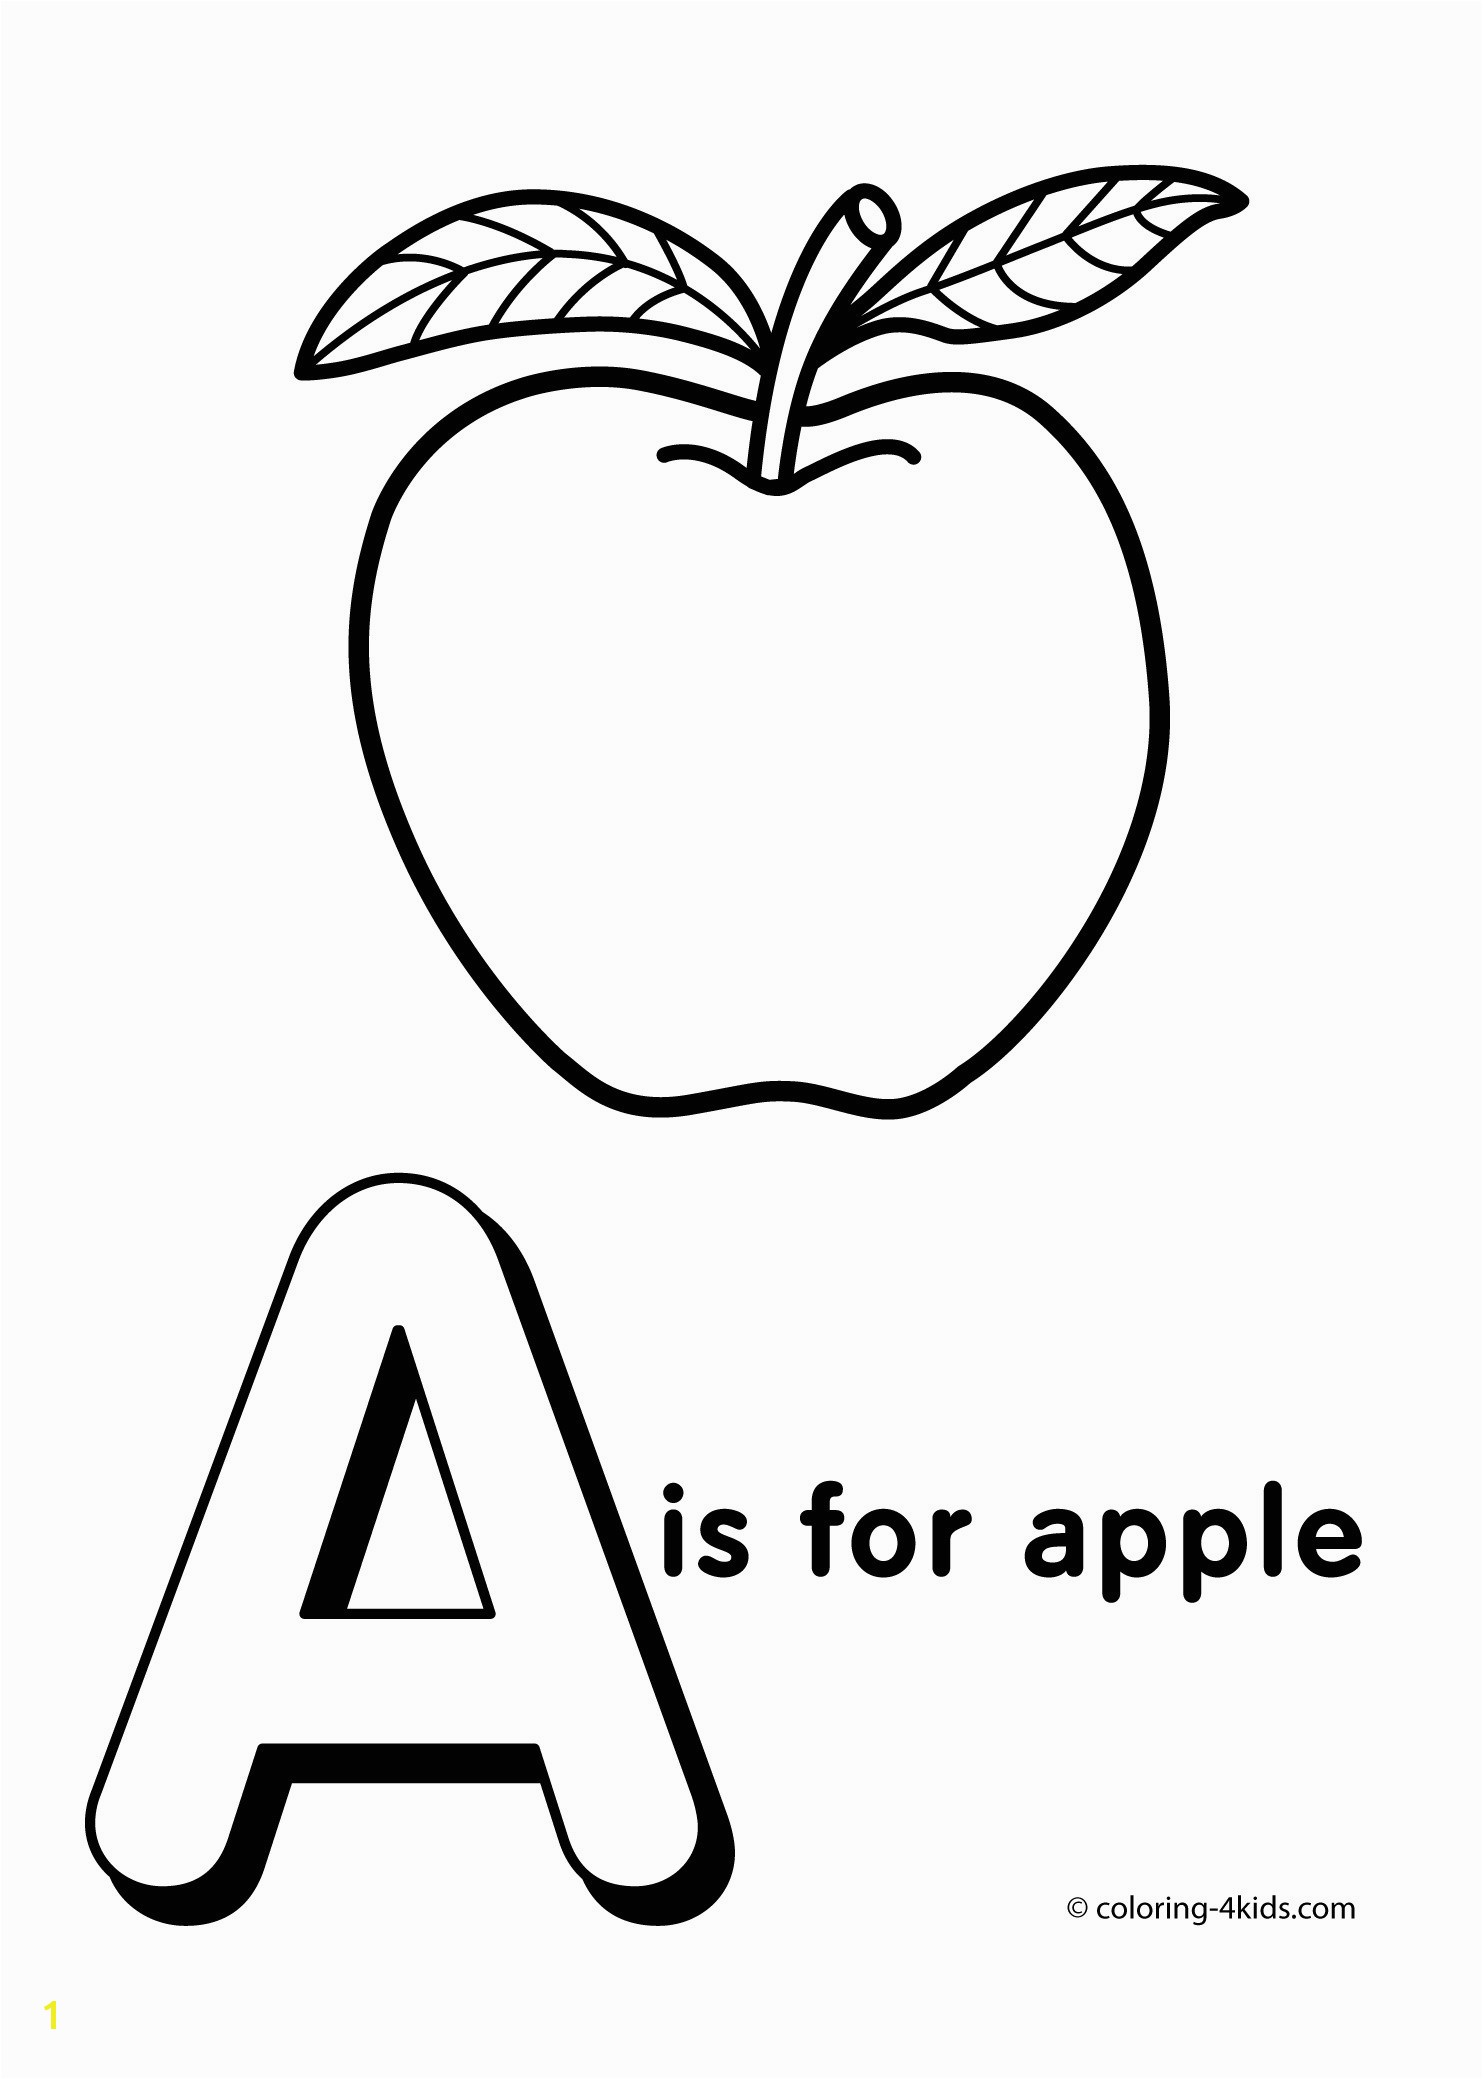 Letter A for Apple Coloring Pages Inspirational Coloring Pages Letters the Alphabet Katesgrove